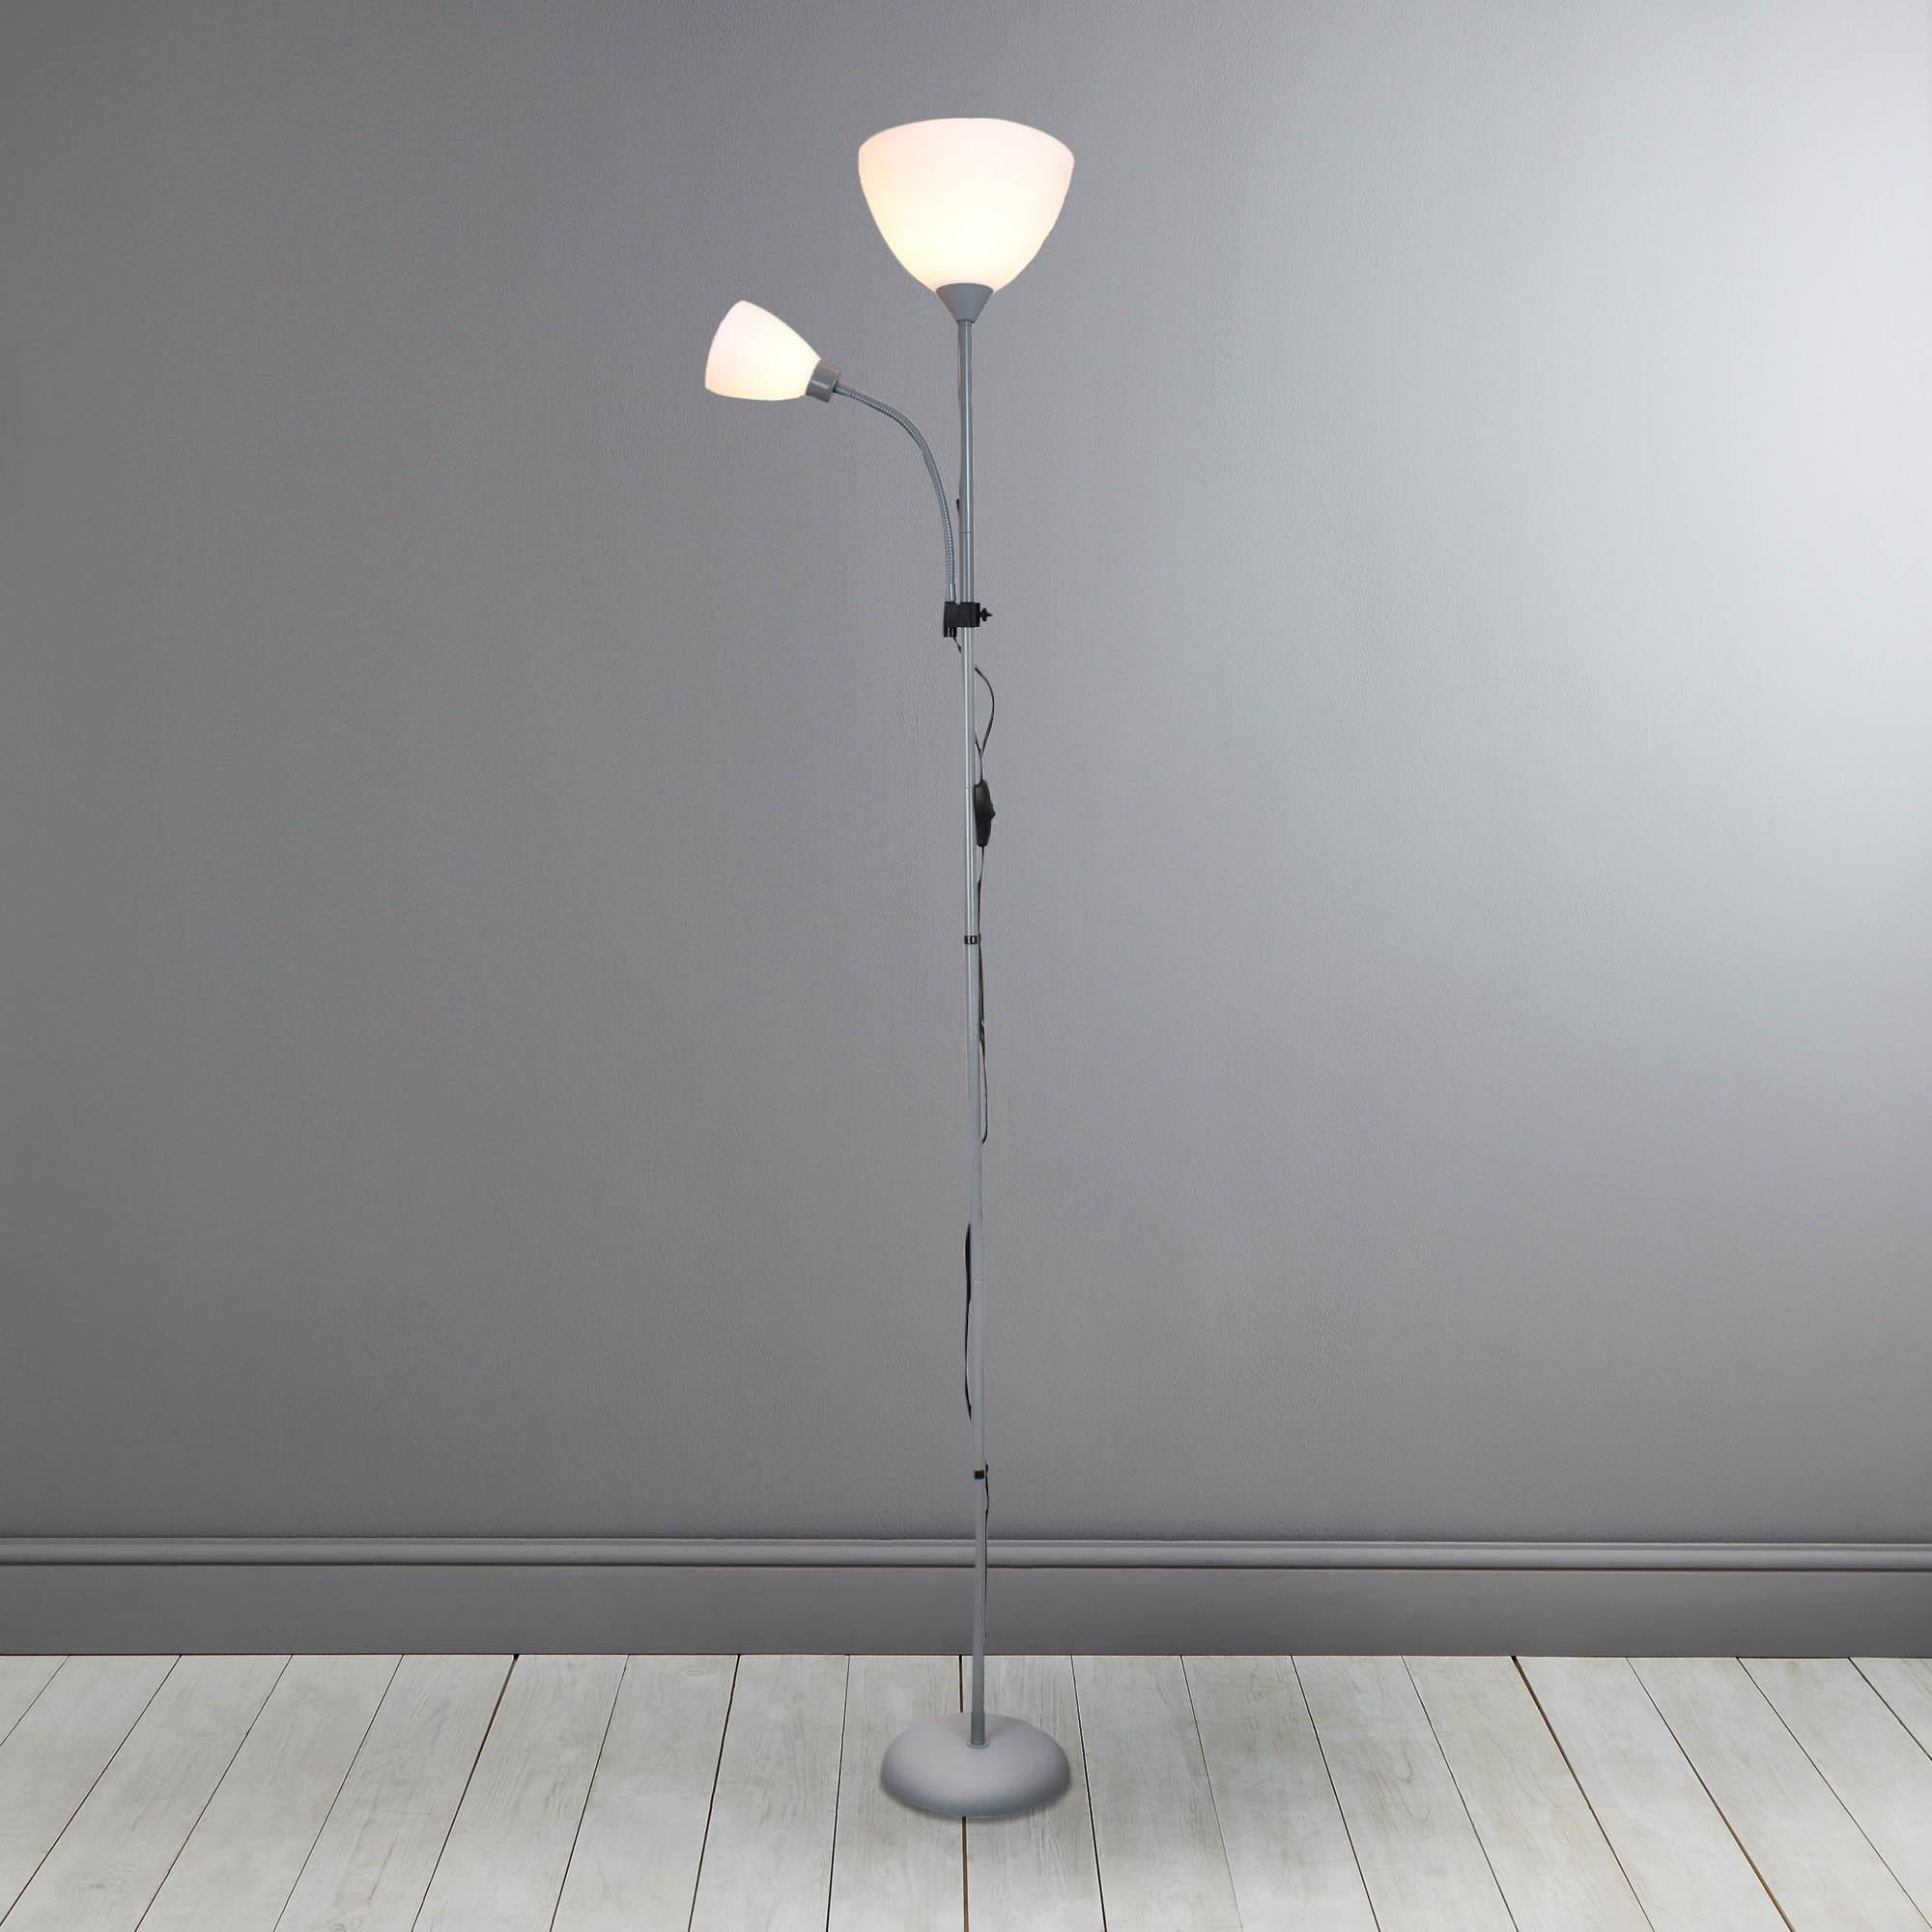 Tips on how to buy standard lamps